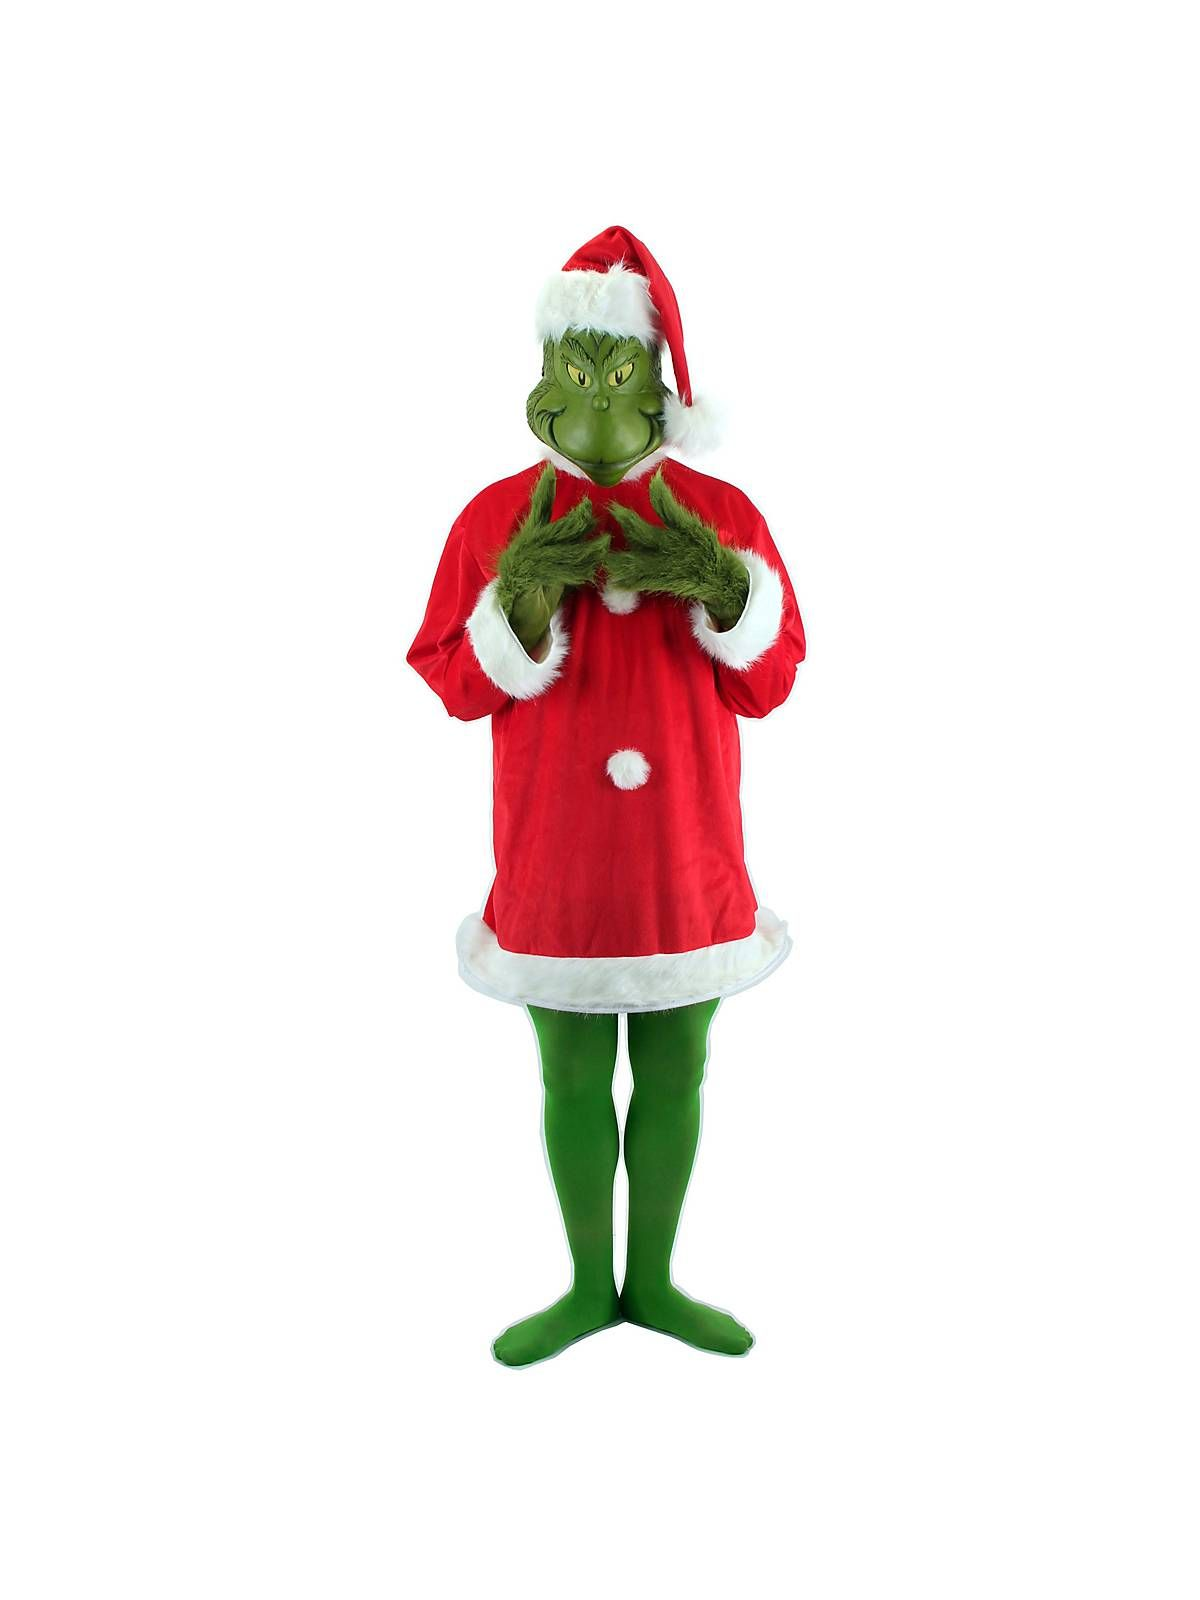 How to make your own grinch costume - The Grinch Santa Costume With Mask